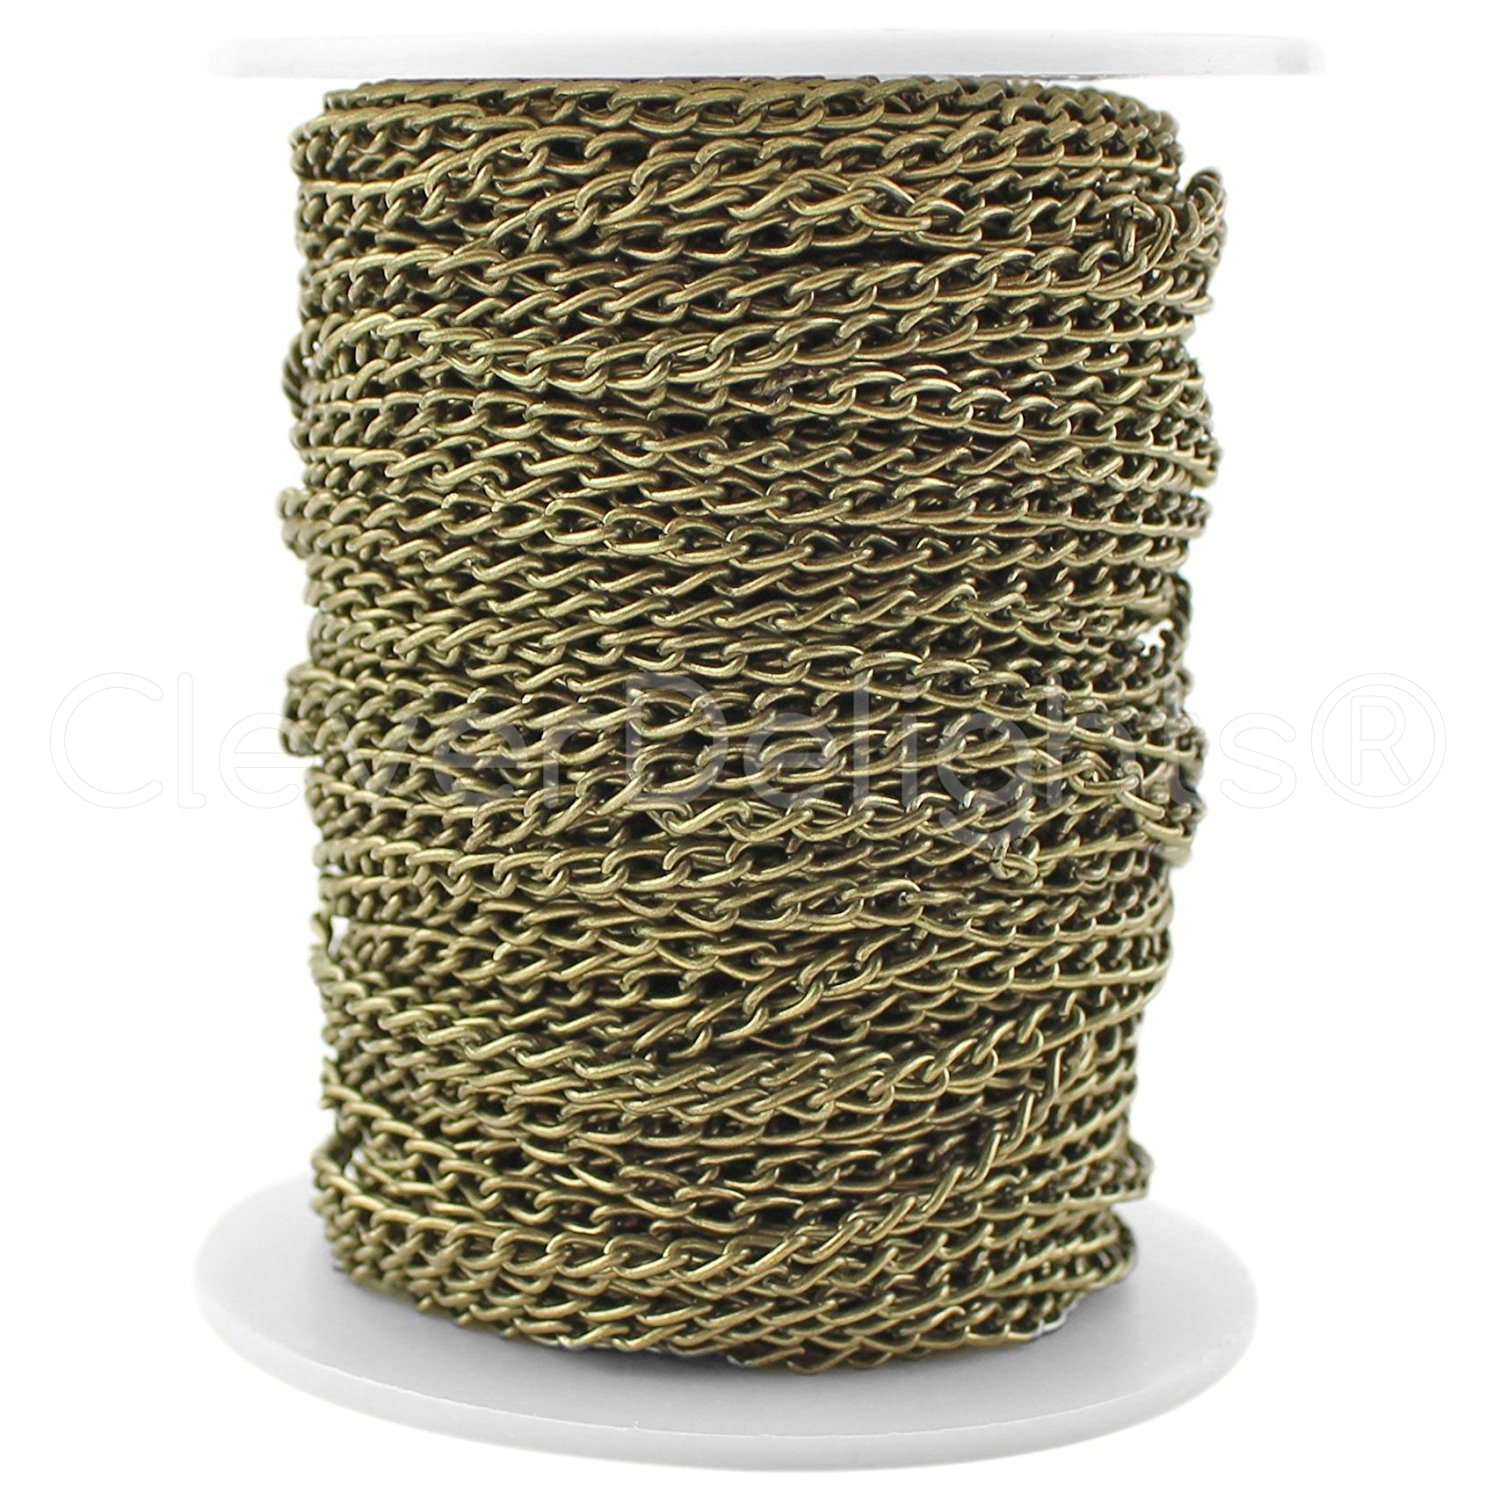 CleverDelights Curb Chain Spool - 3x5mm Link - Antique Bronze Color - 100 Feet